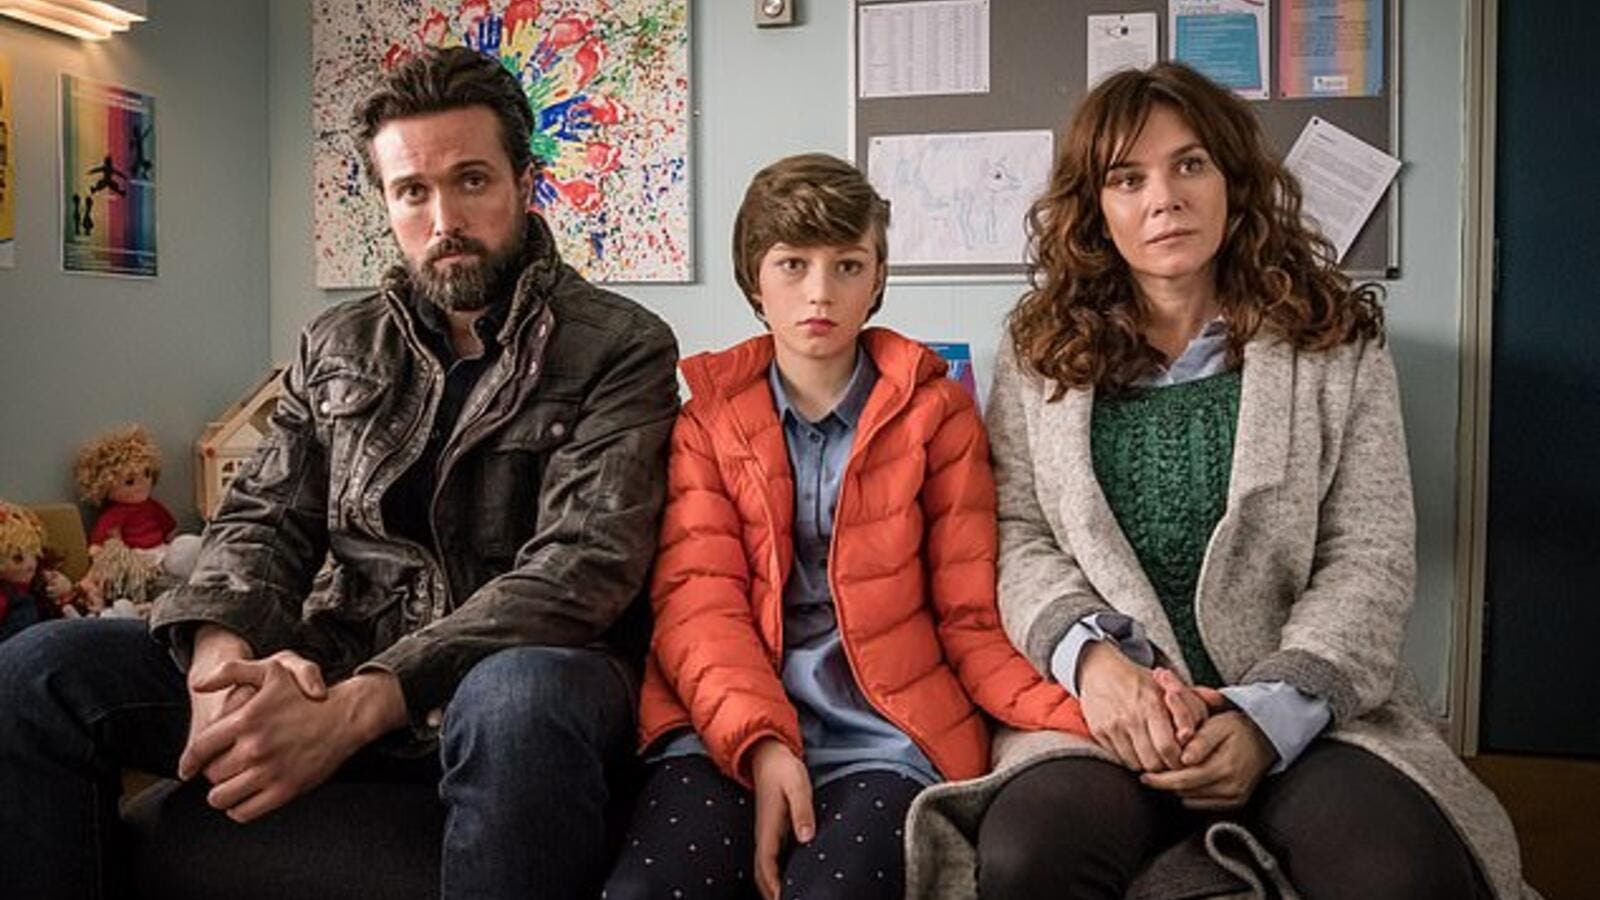 In the show parents Vicky (played by Anna Friel) and Stephen (Emmet J Scanlan)  seek to support Max (Callum Booth-Ford), their 11-year-old son who identifies as a girl. (Daily Mail)